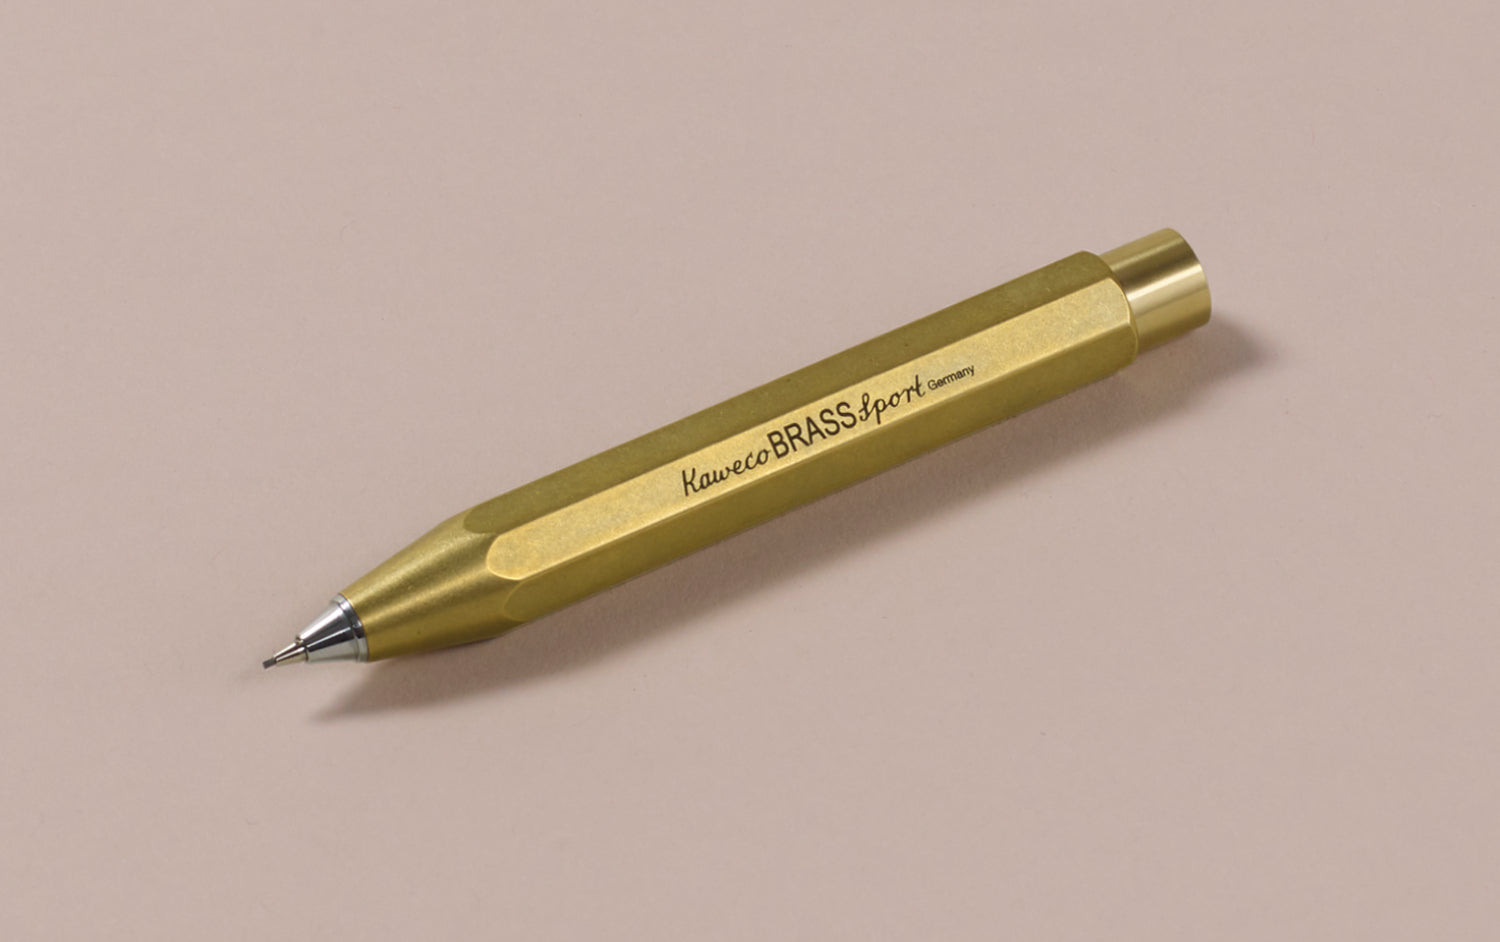 Brass Kaweco Sport 0.7mm Mechanical Pencil